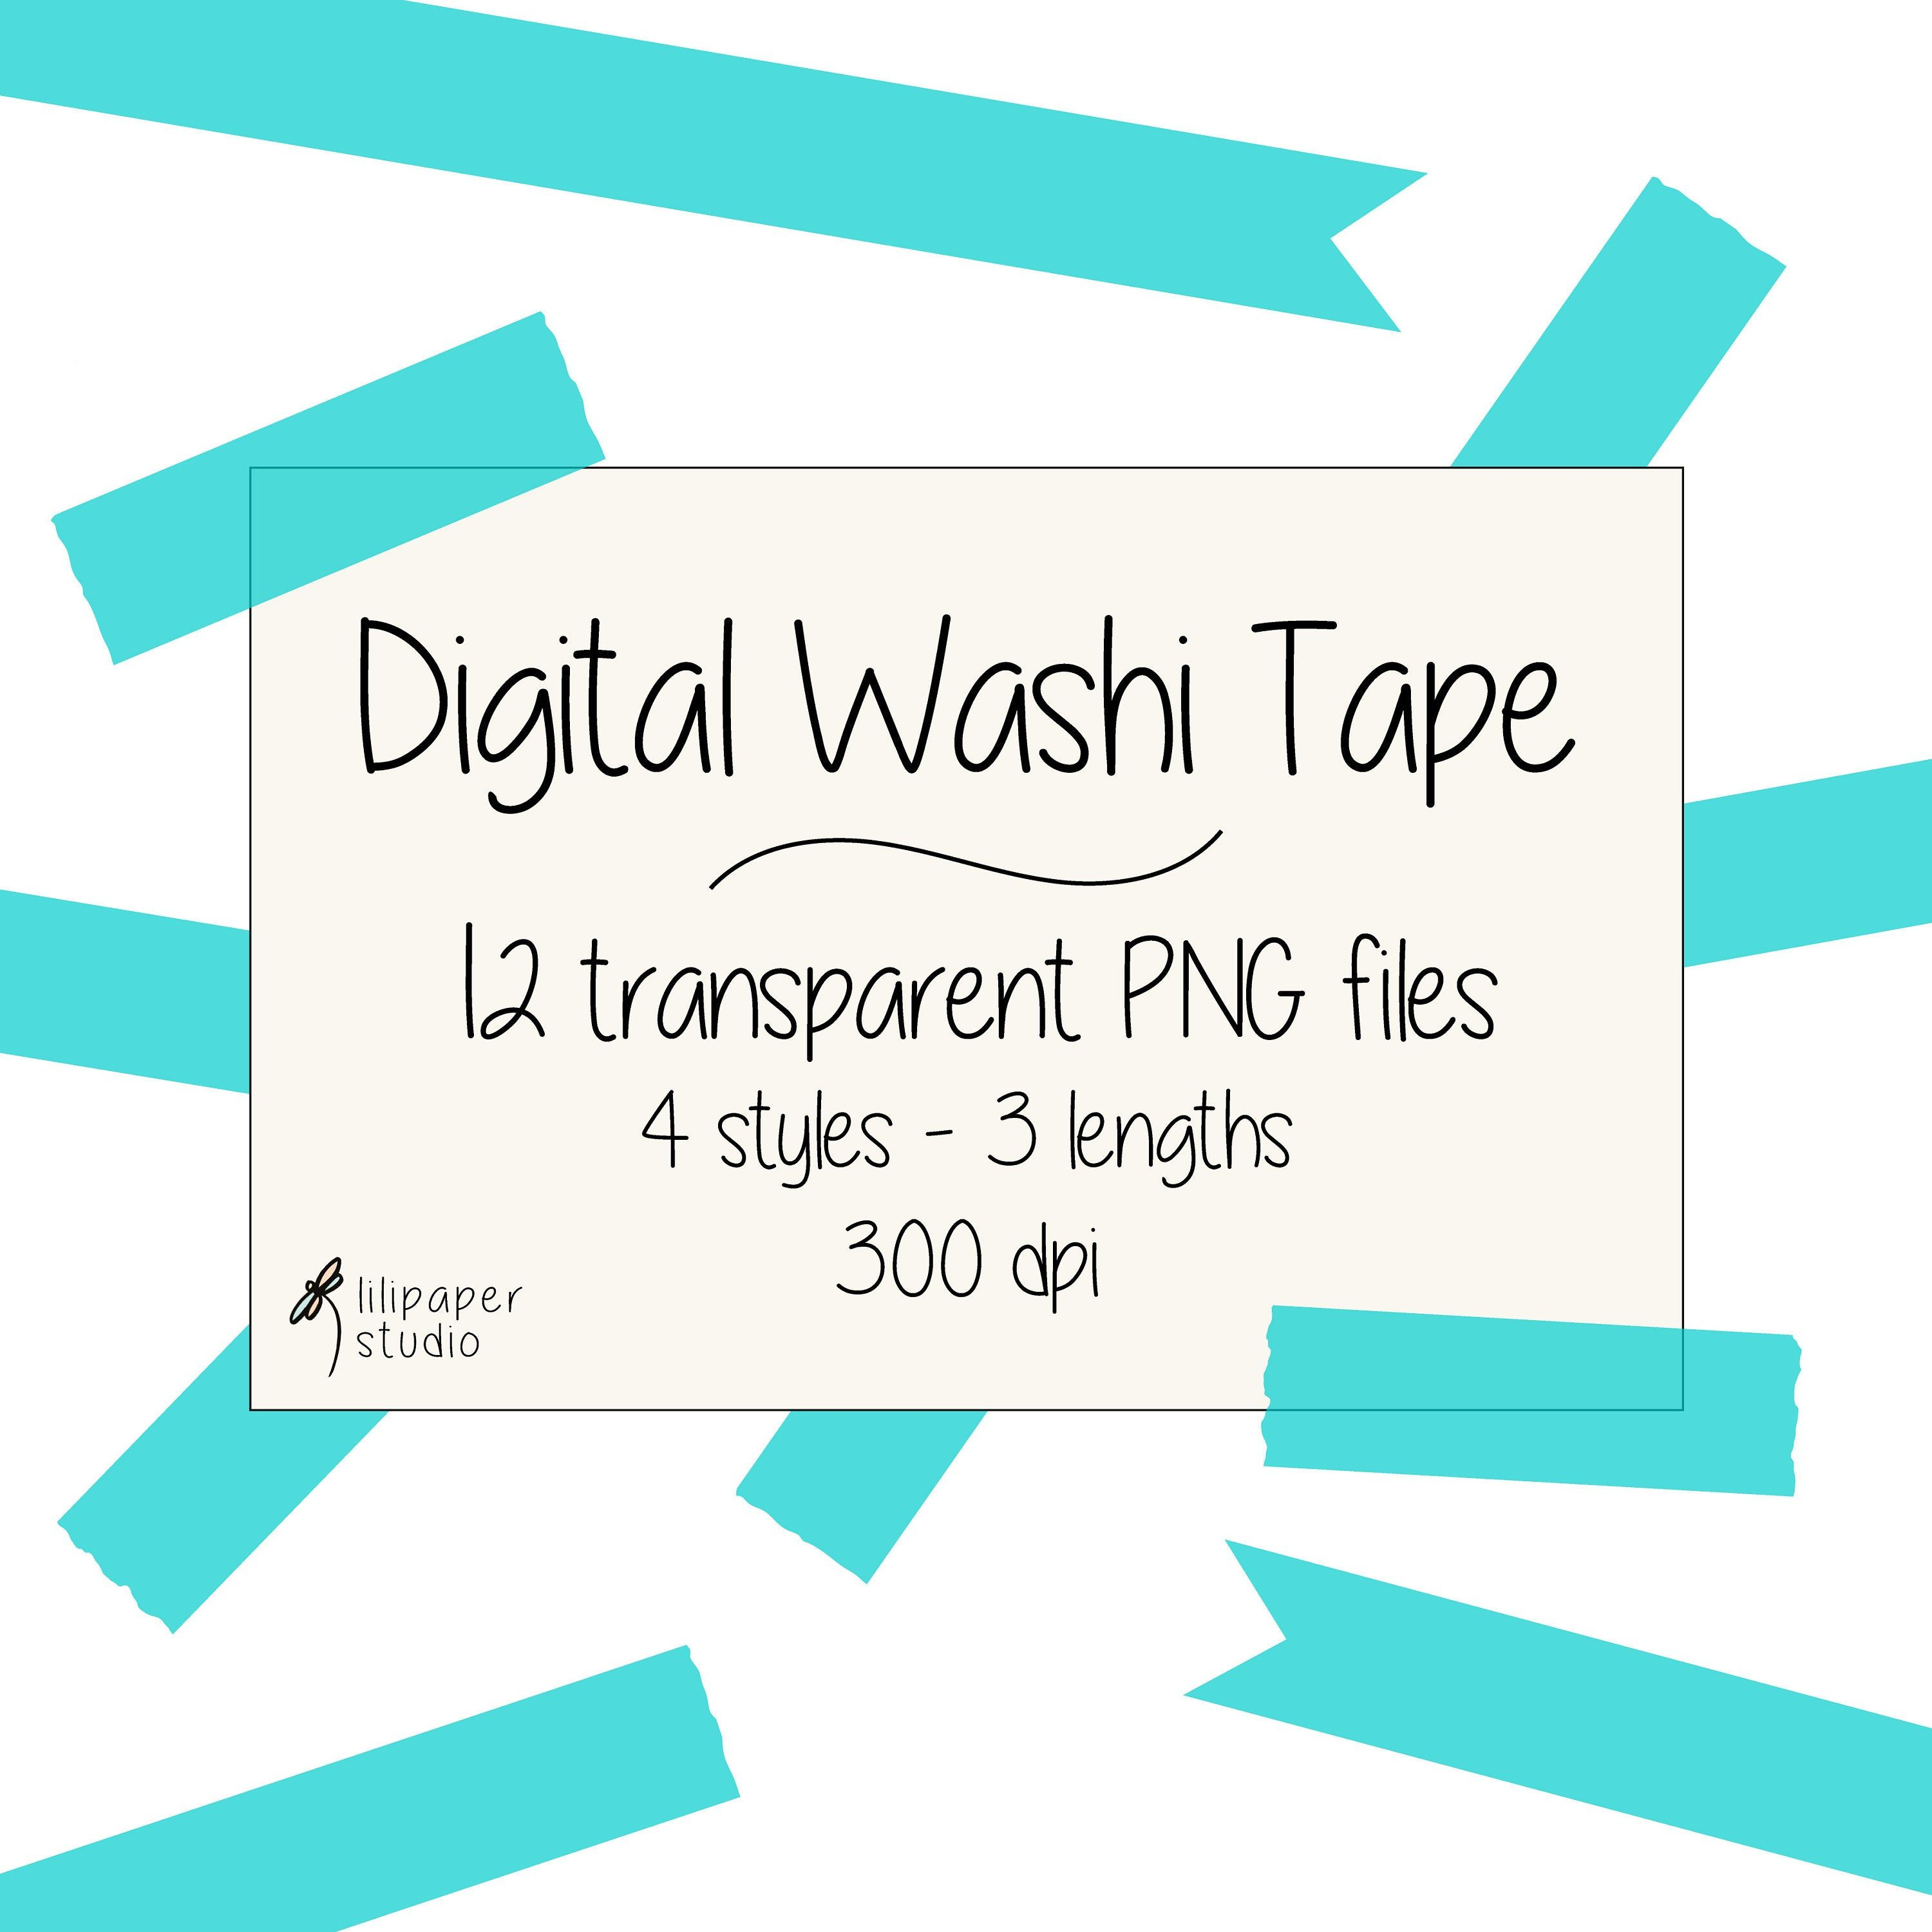 Sky Blue Washi Tape Cliparts 12 Transparent Png Files Blue Digital Washi Tape Digital Download Free Commercial Use 4 Styles 3 Lengths Washi Tape Washi Pink Scrapbook Paper